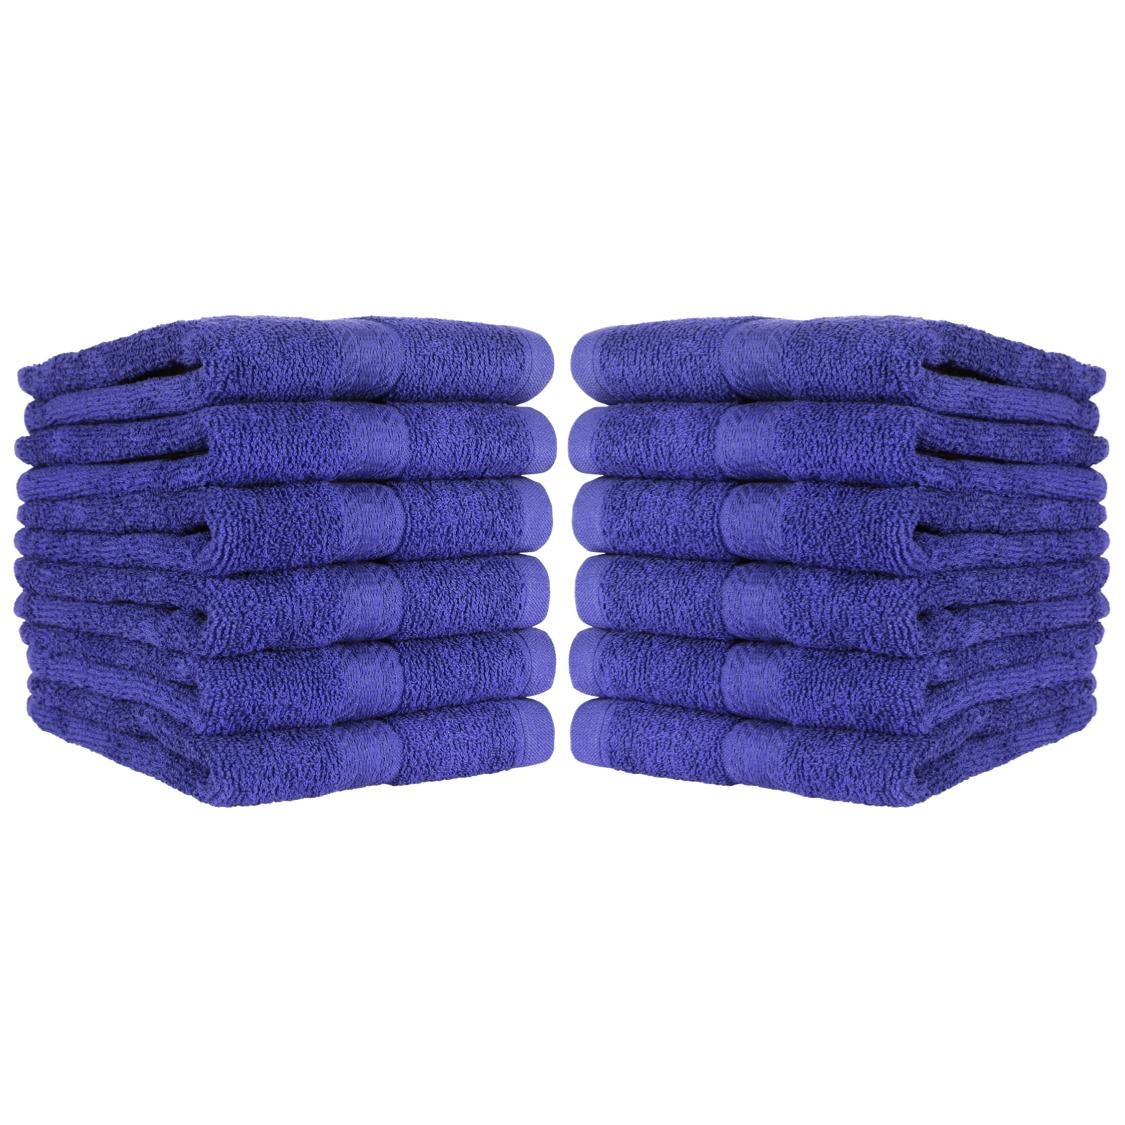 12 Pack of Hand Towels - 100% Ring-Spun x 27 Color